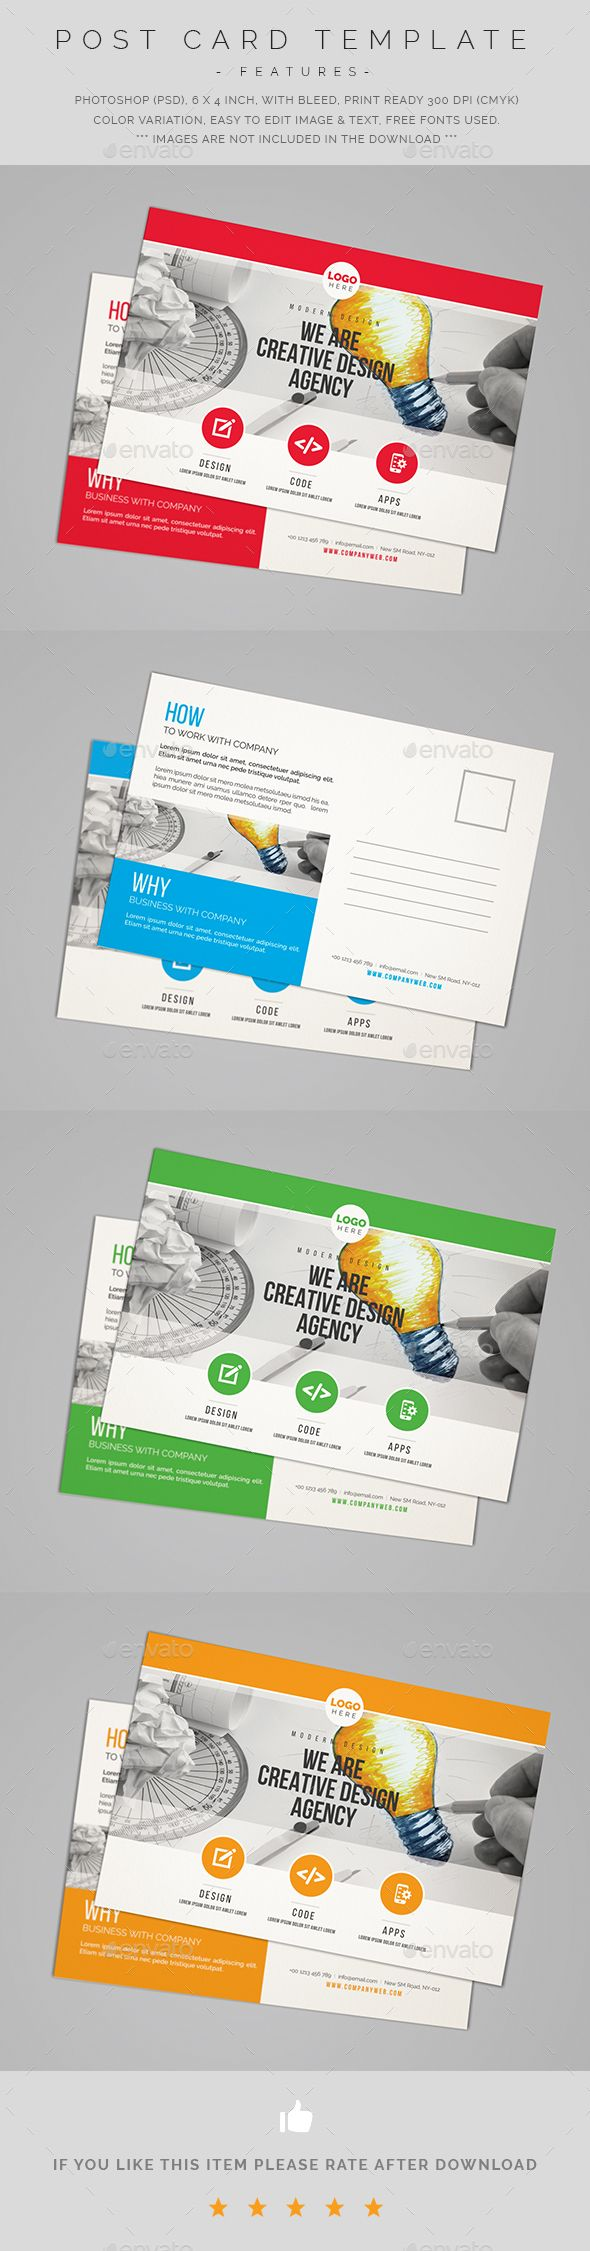 Creative Postcard Template Psd | Postcard Templates | Pinterest | Postcard  Template, Template And Creative